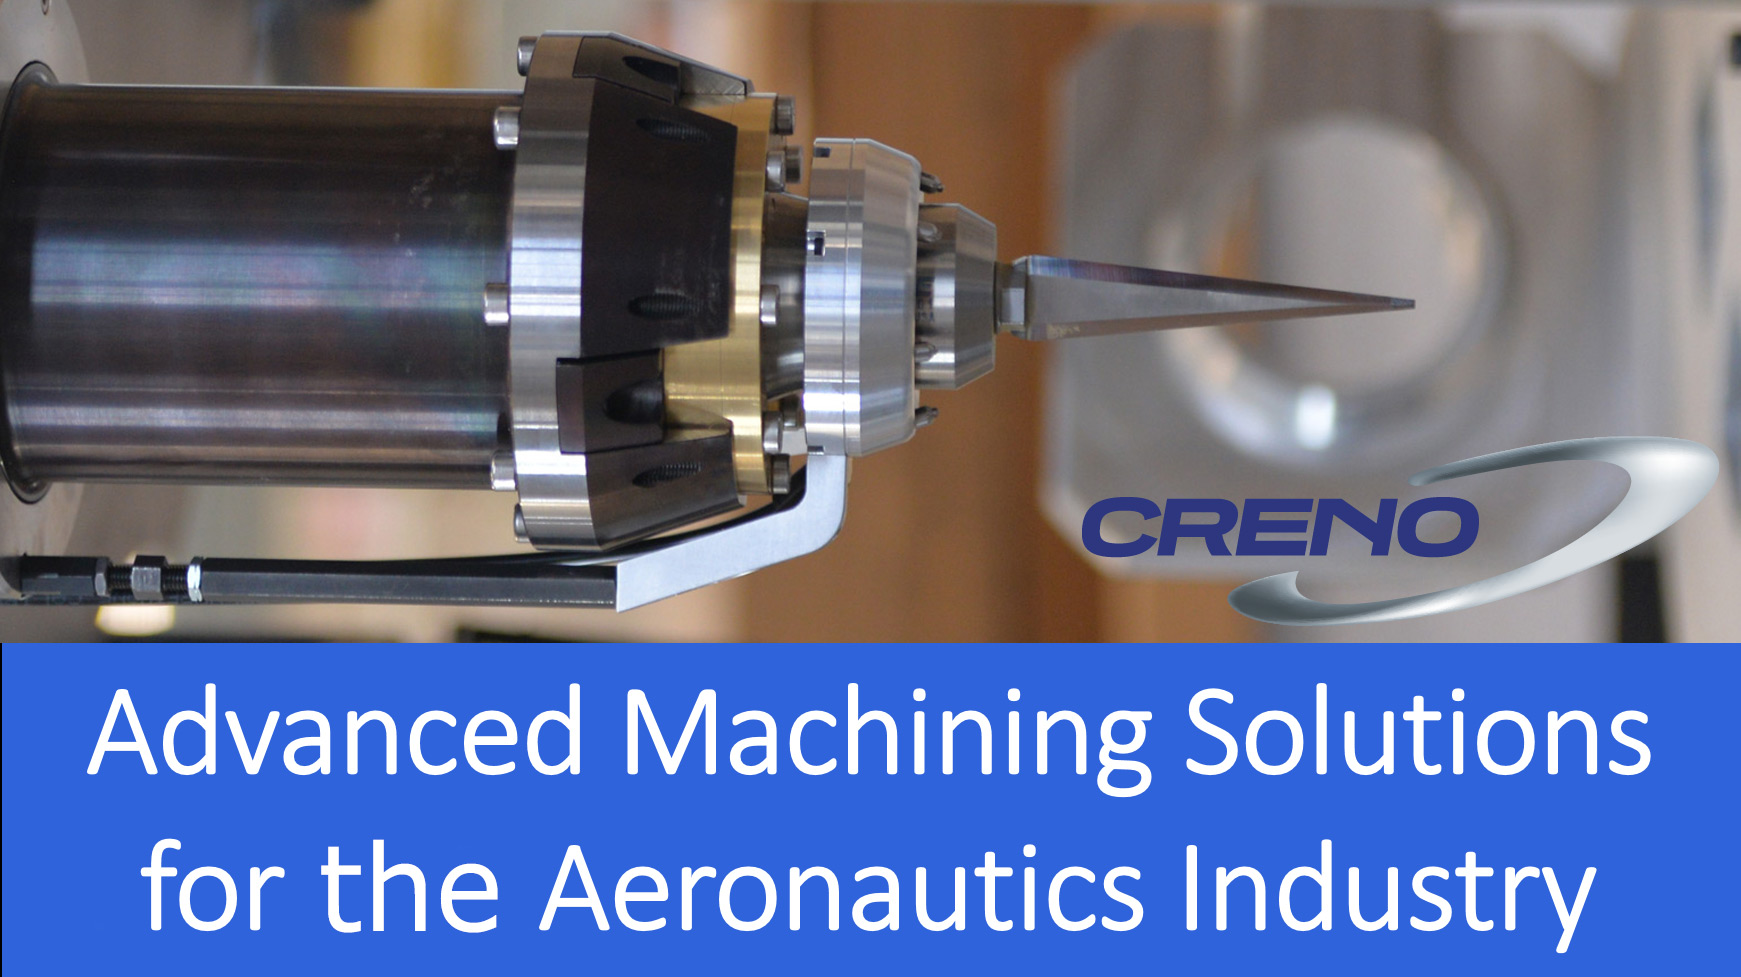 CRENO Advanced Machining Solutions for Aeronautics Industry